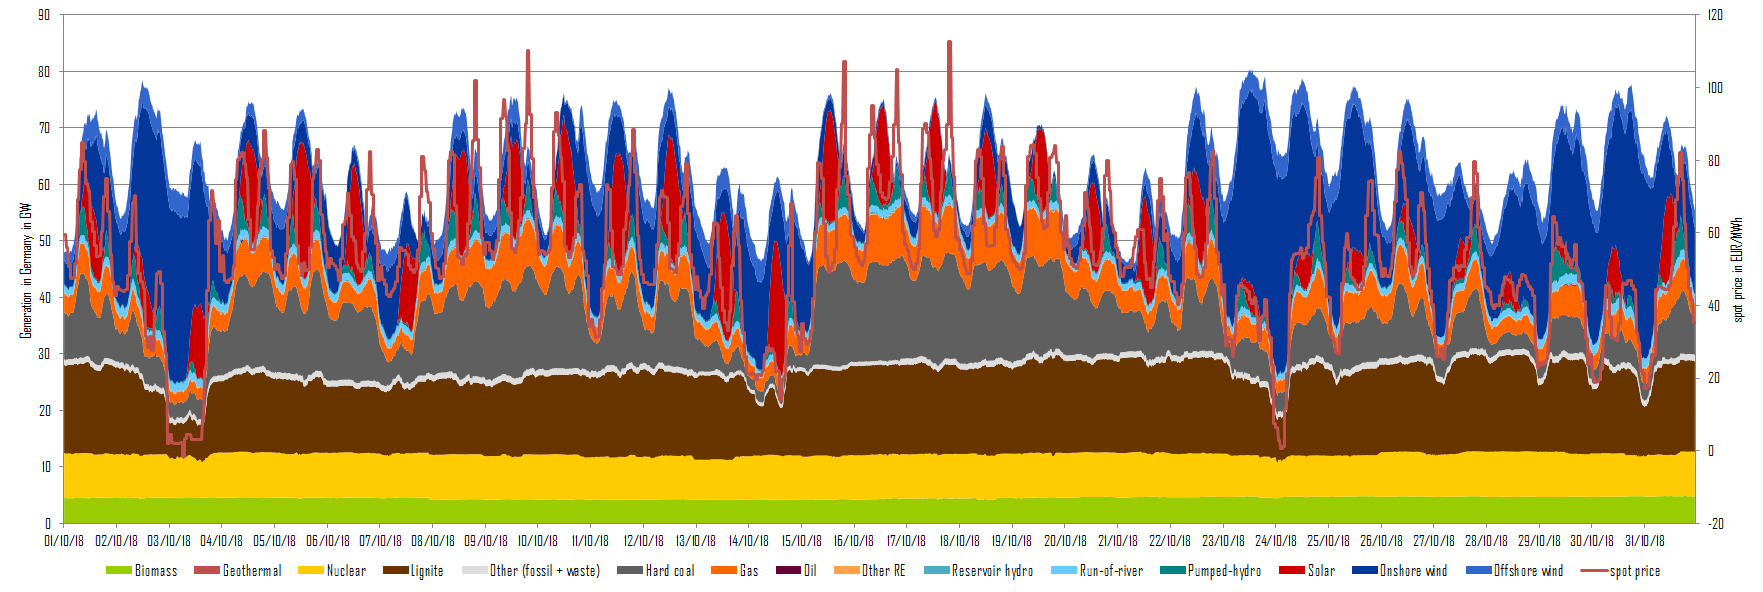 Electricity generation and day-ahead prices in October 2018 in Germany, (Source: Energy Brainpool)